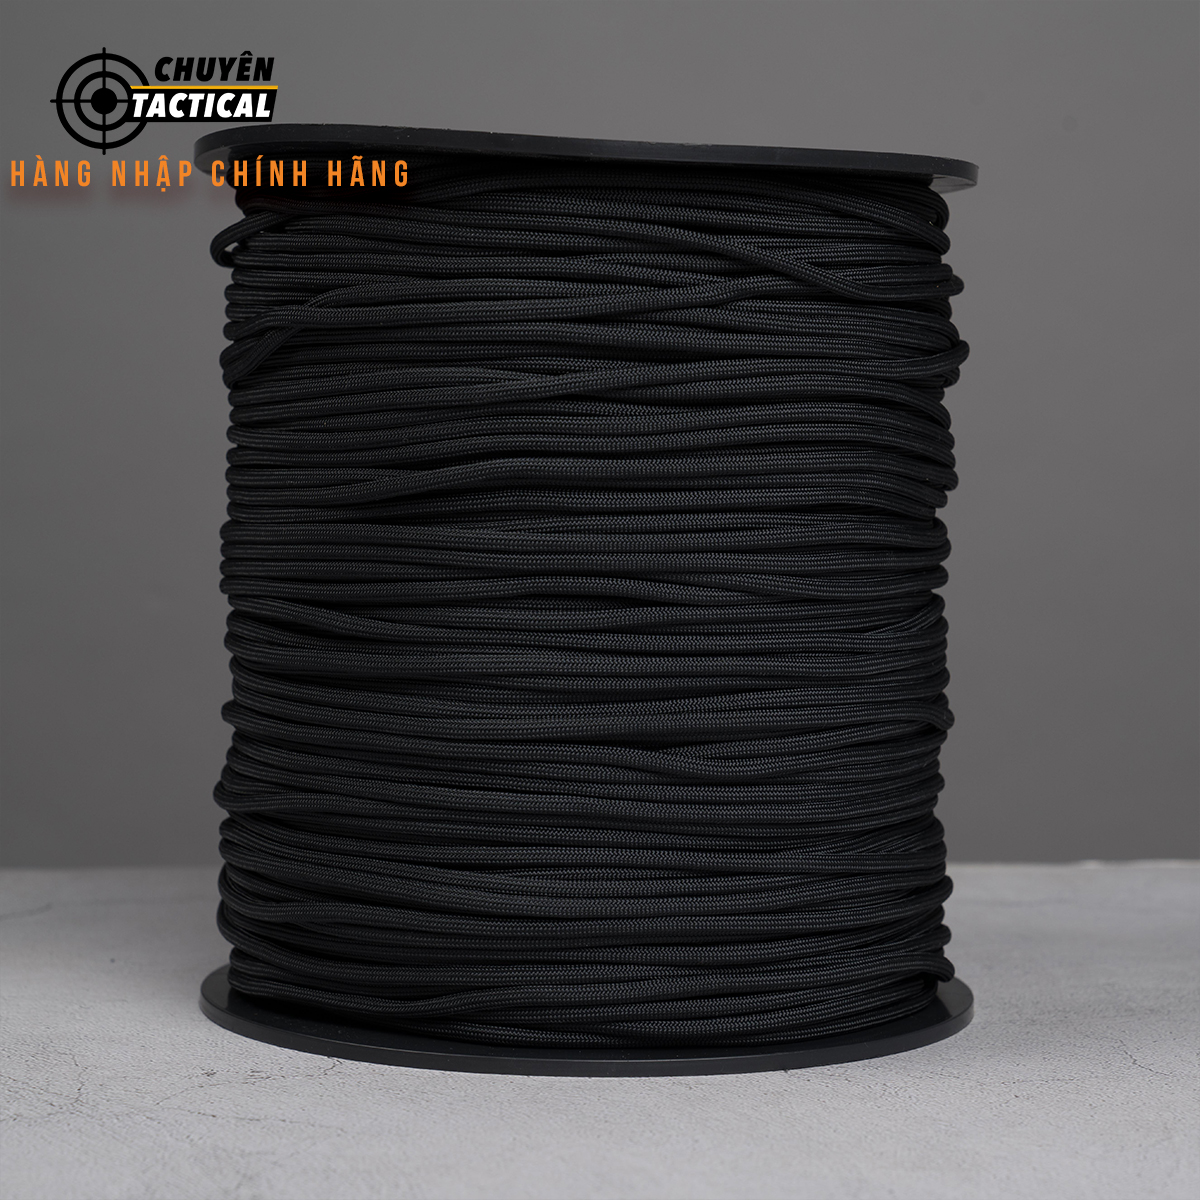 1m - Dây Paracord 550 - Black